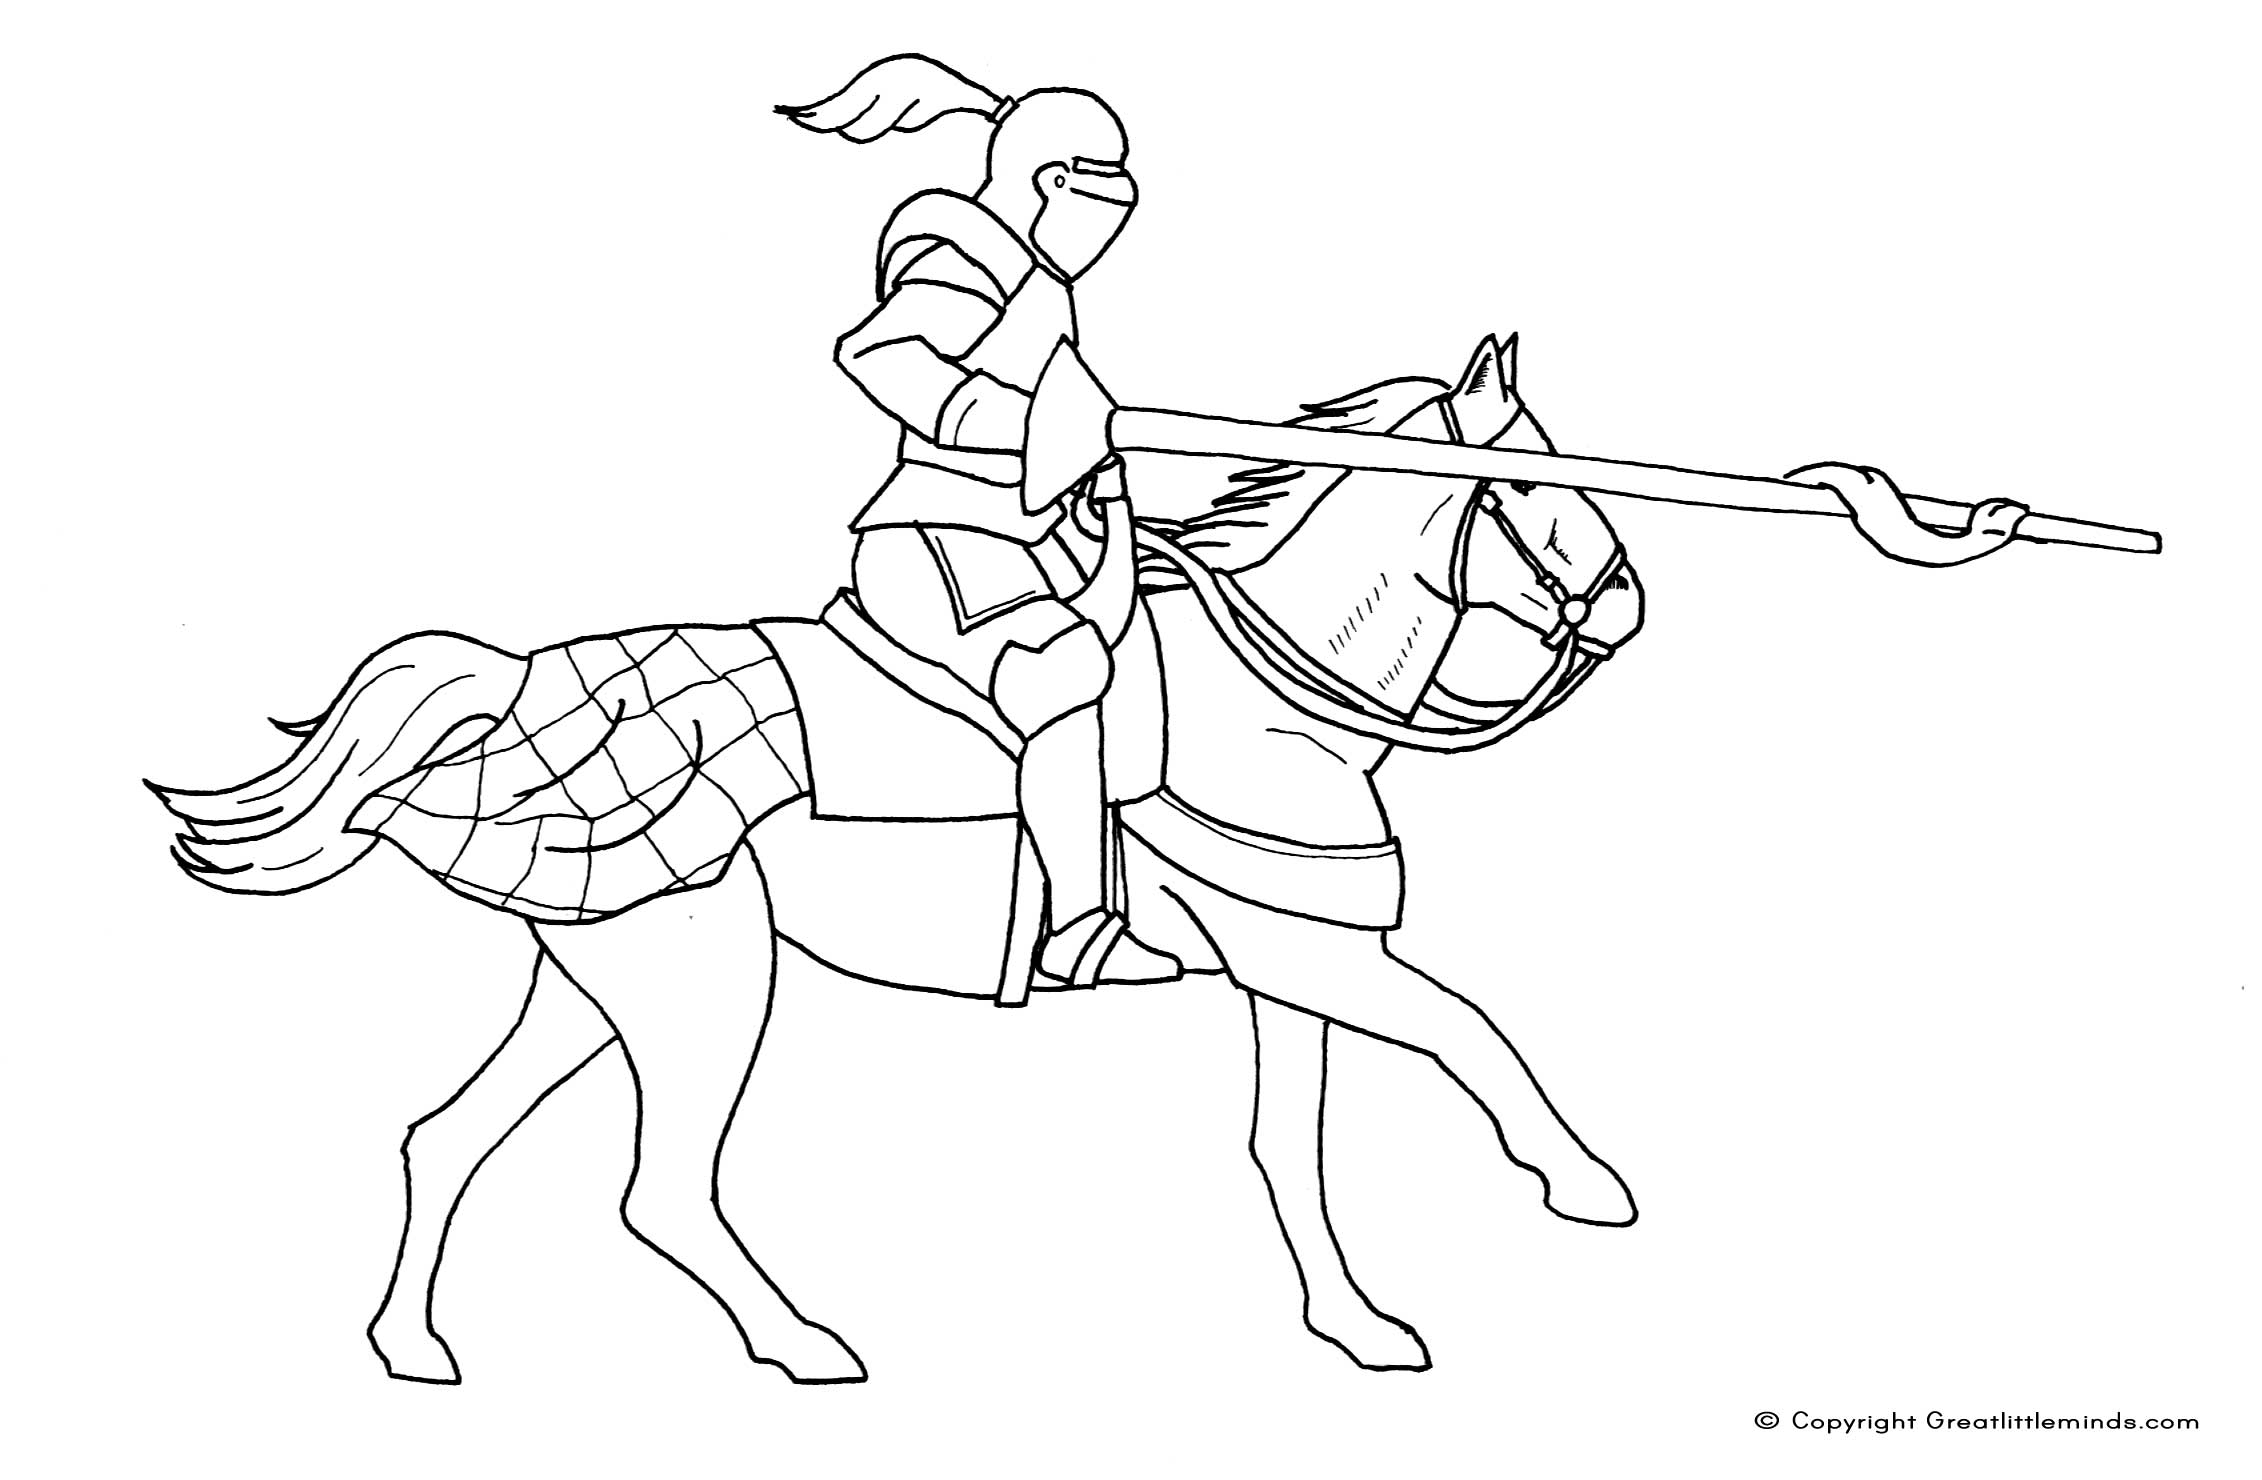 knight on a horse drawing armor clipart etc on horse knight drawing a